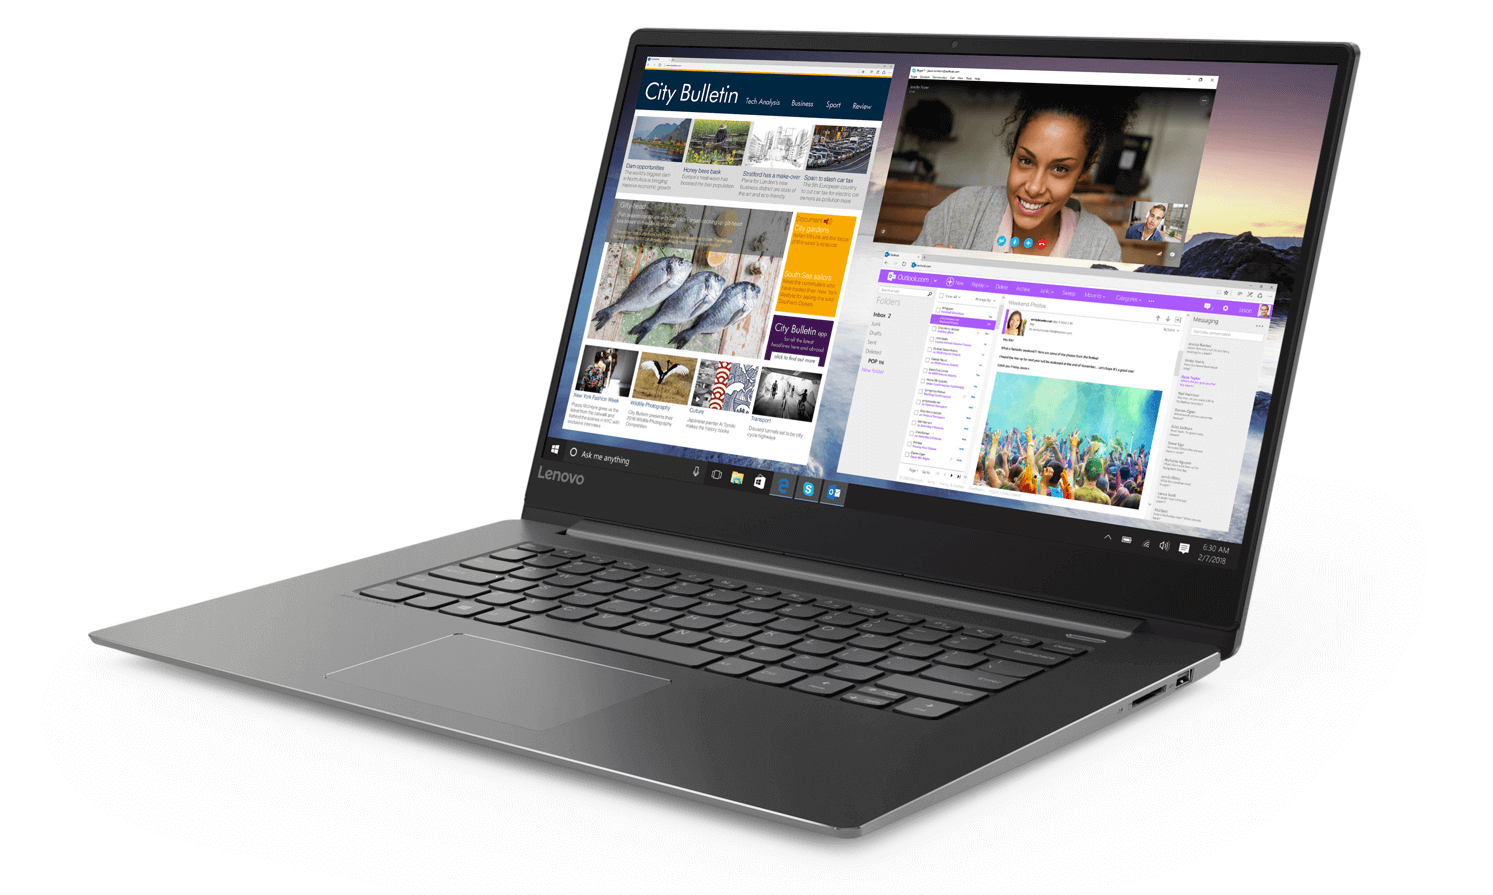 Lenovo refreshes affordable IdeaPad lineup with three new laptops